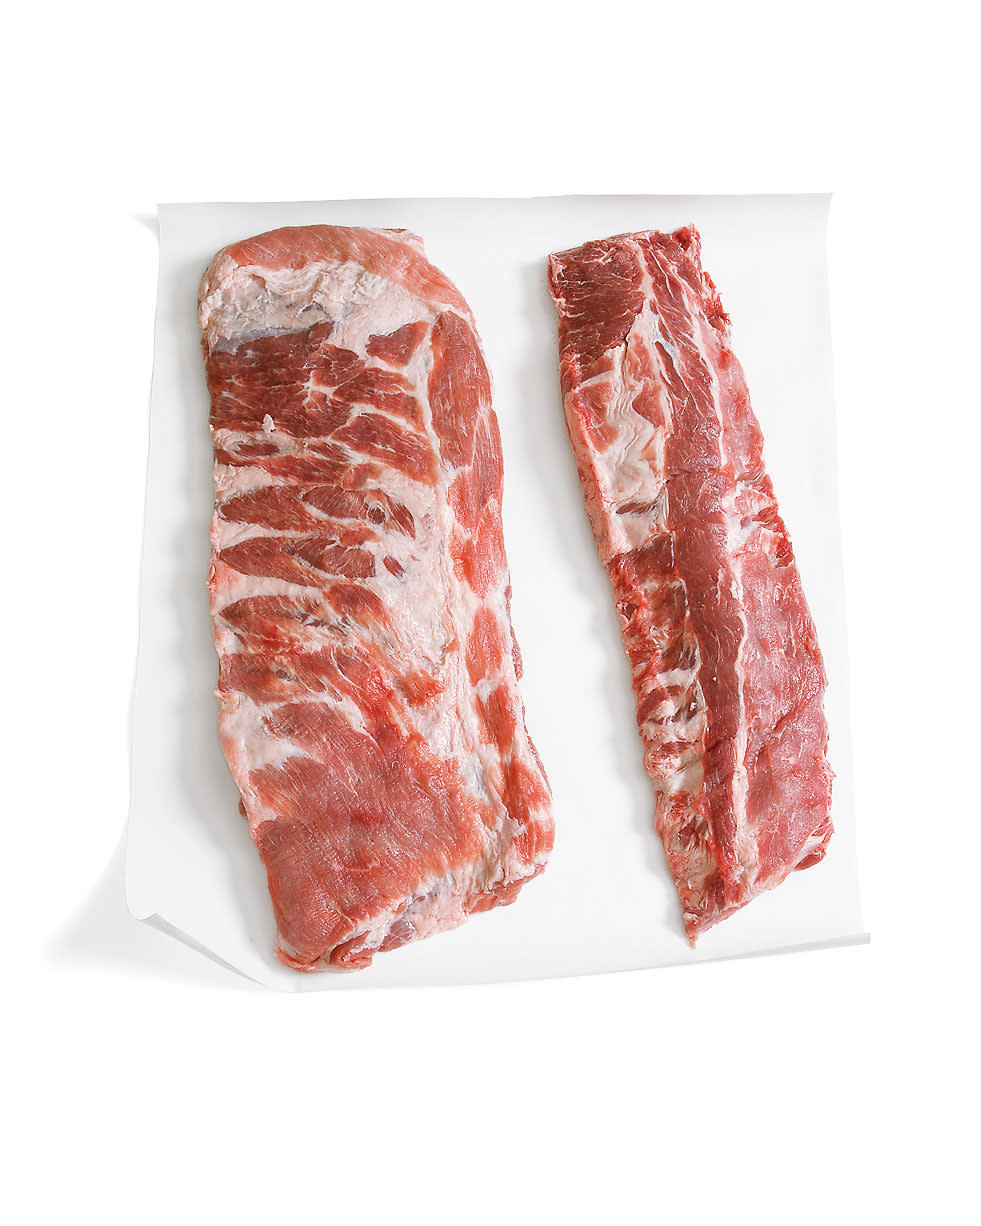 Pork Ribs: Baby Back Ribs vs. Spareribs